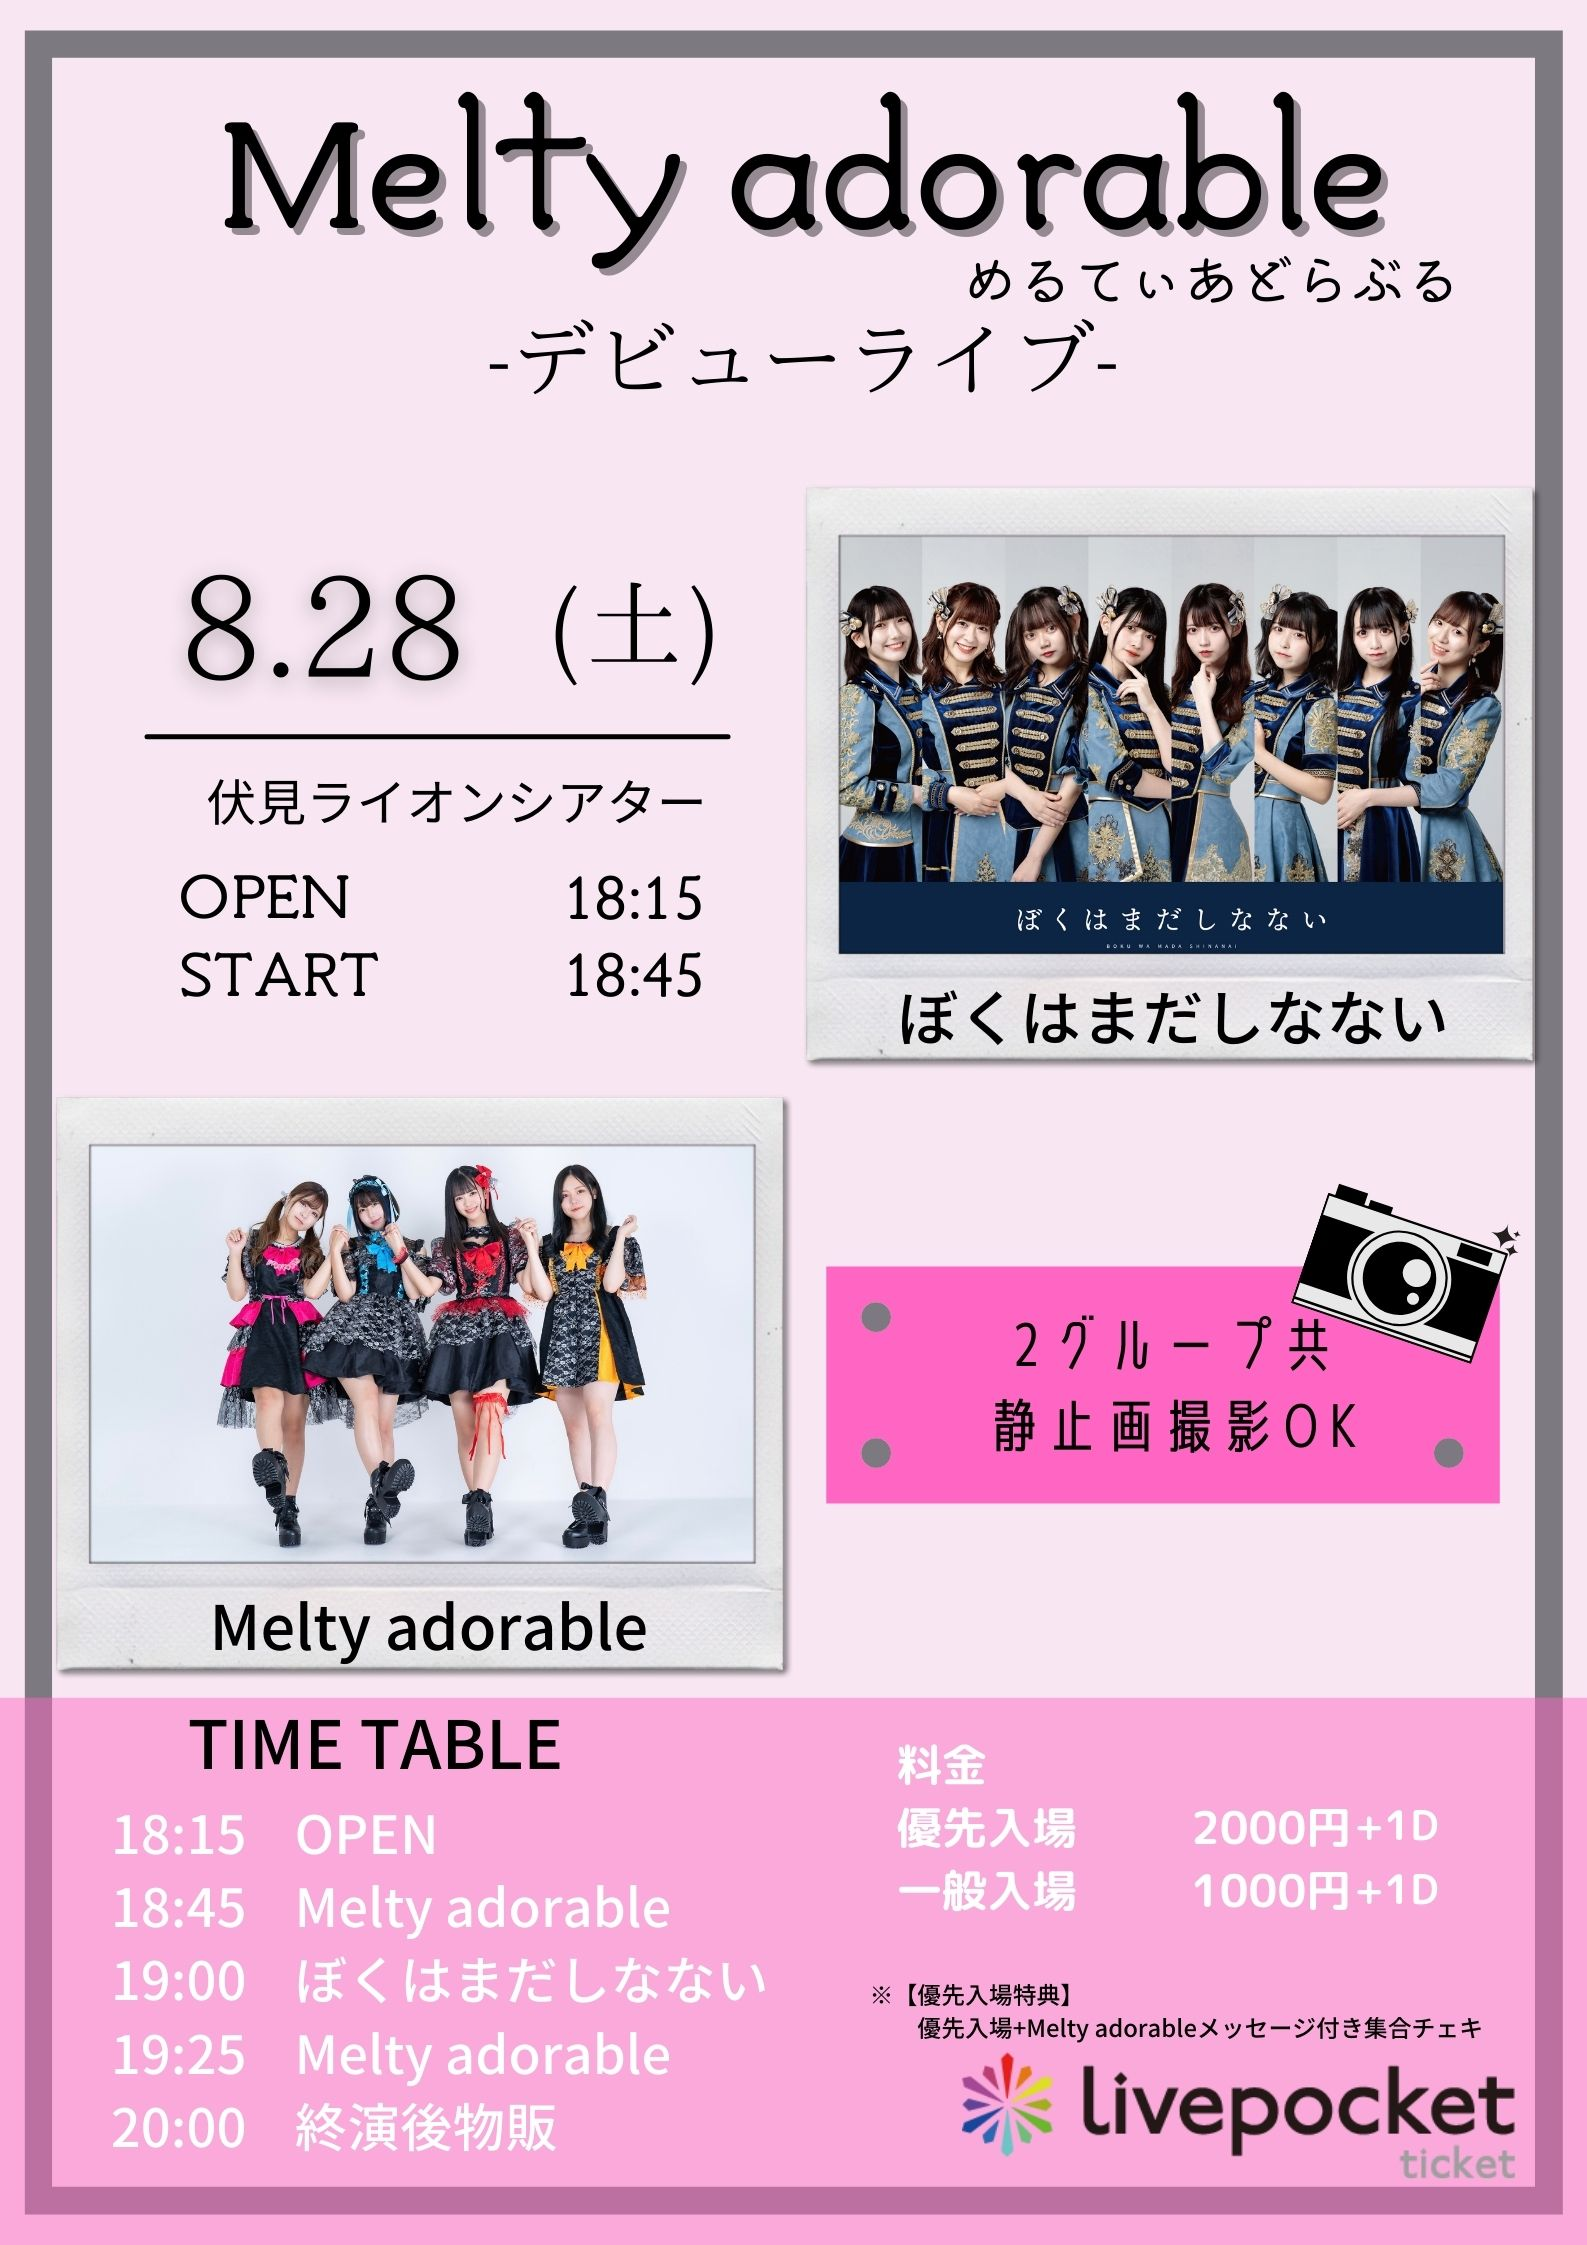 Melty adorable-デビューライブ-